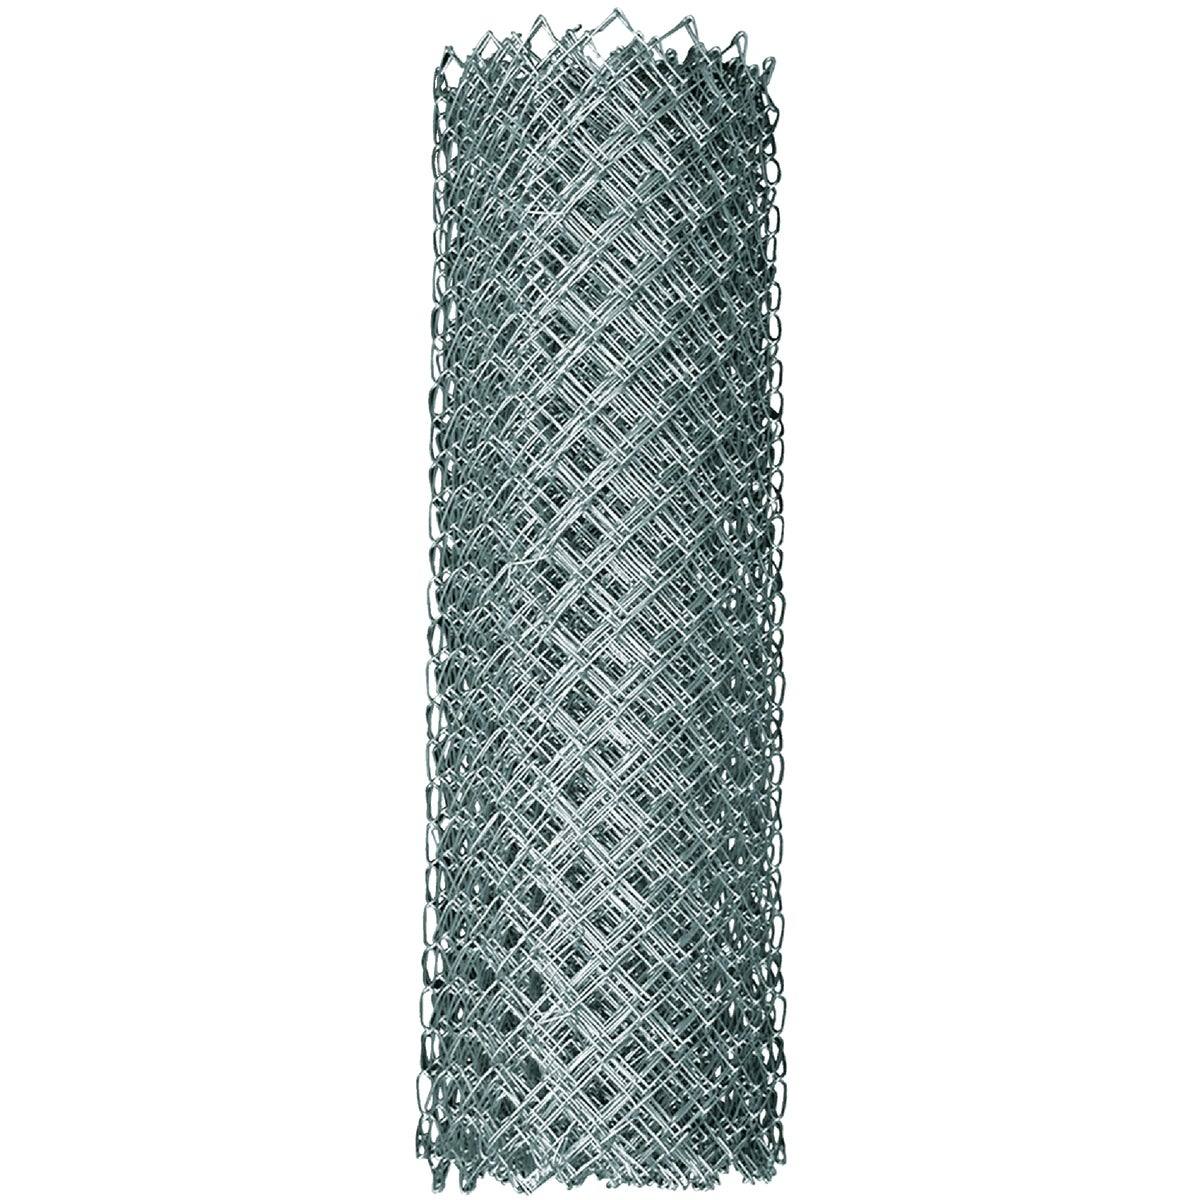 11-1/2GA 4X50'CHAIN LINK - 308704A by Midwest Air Tech